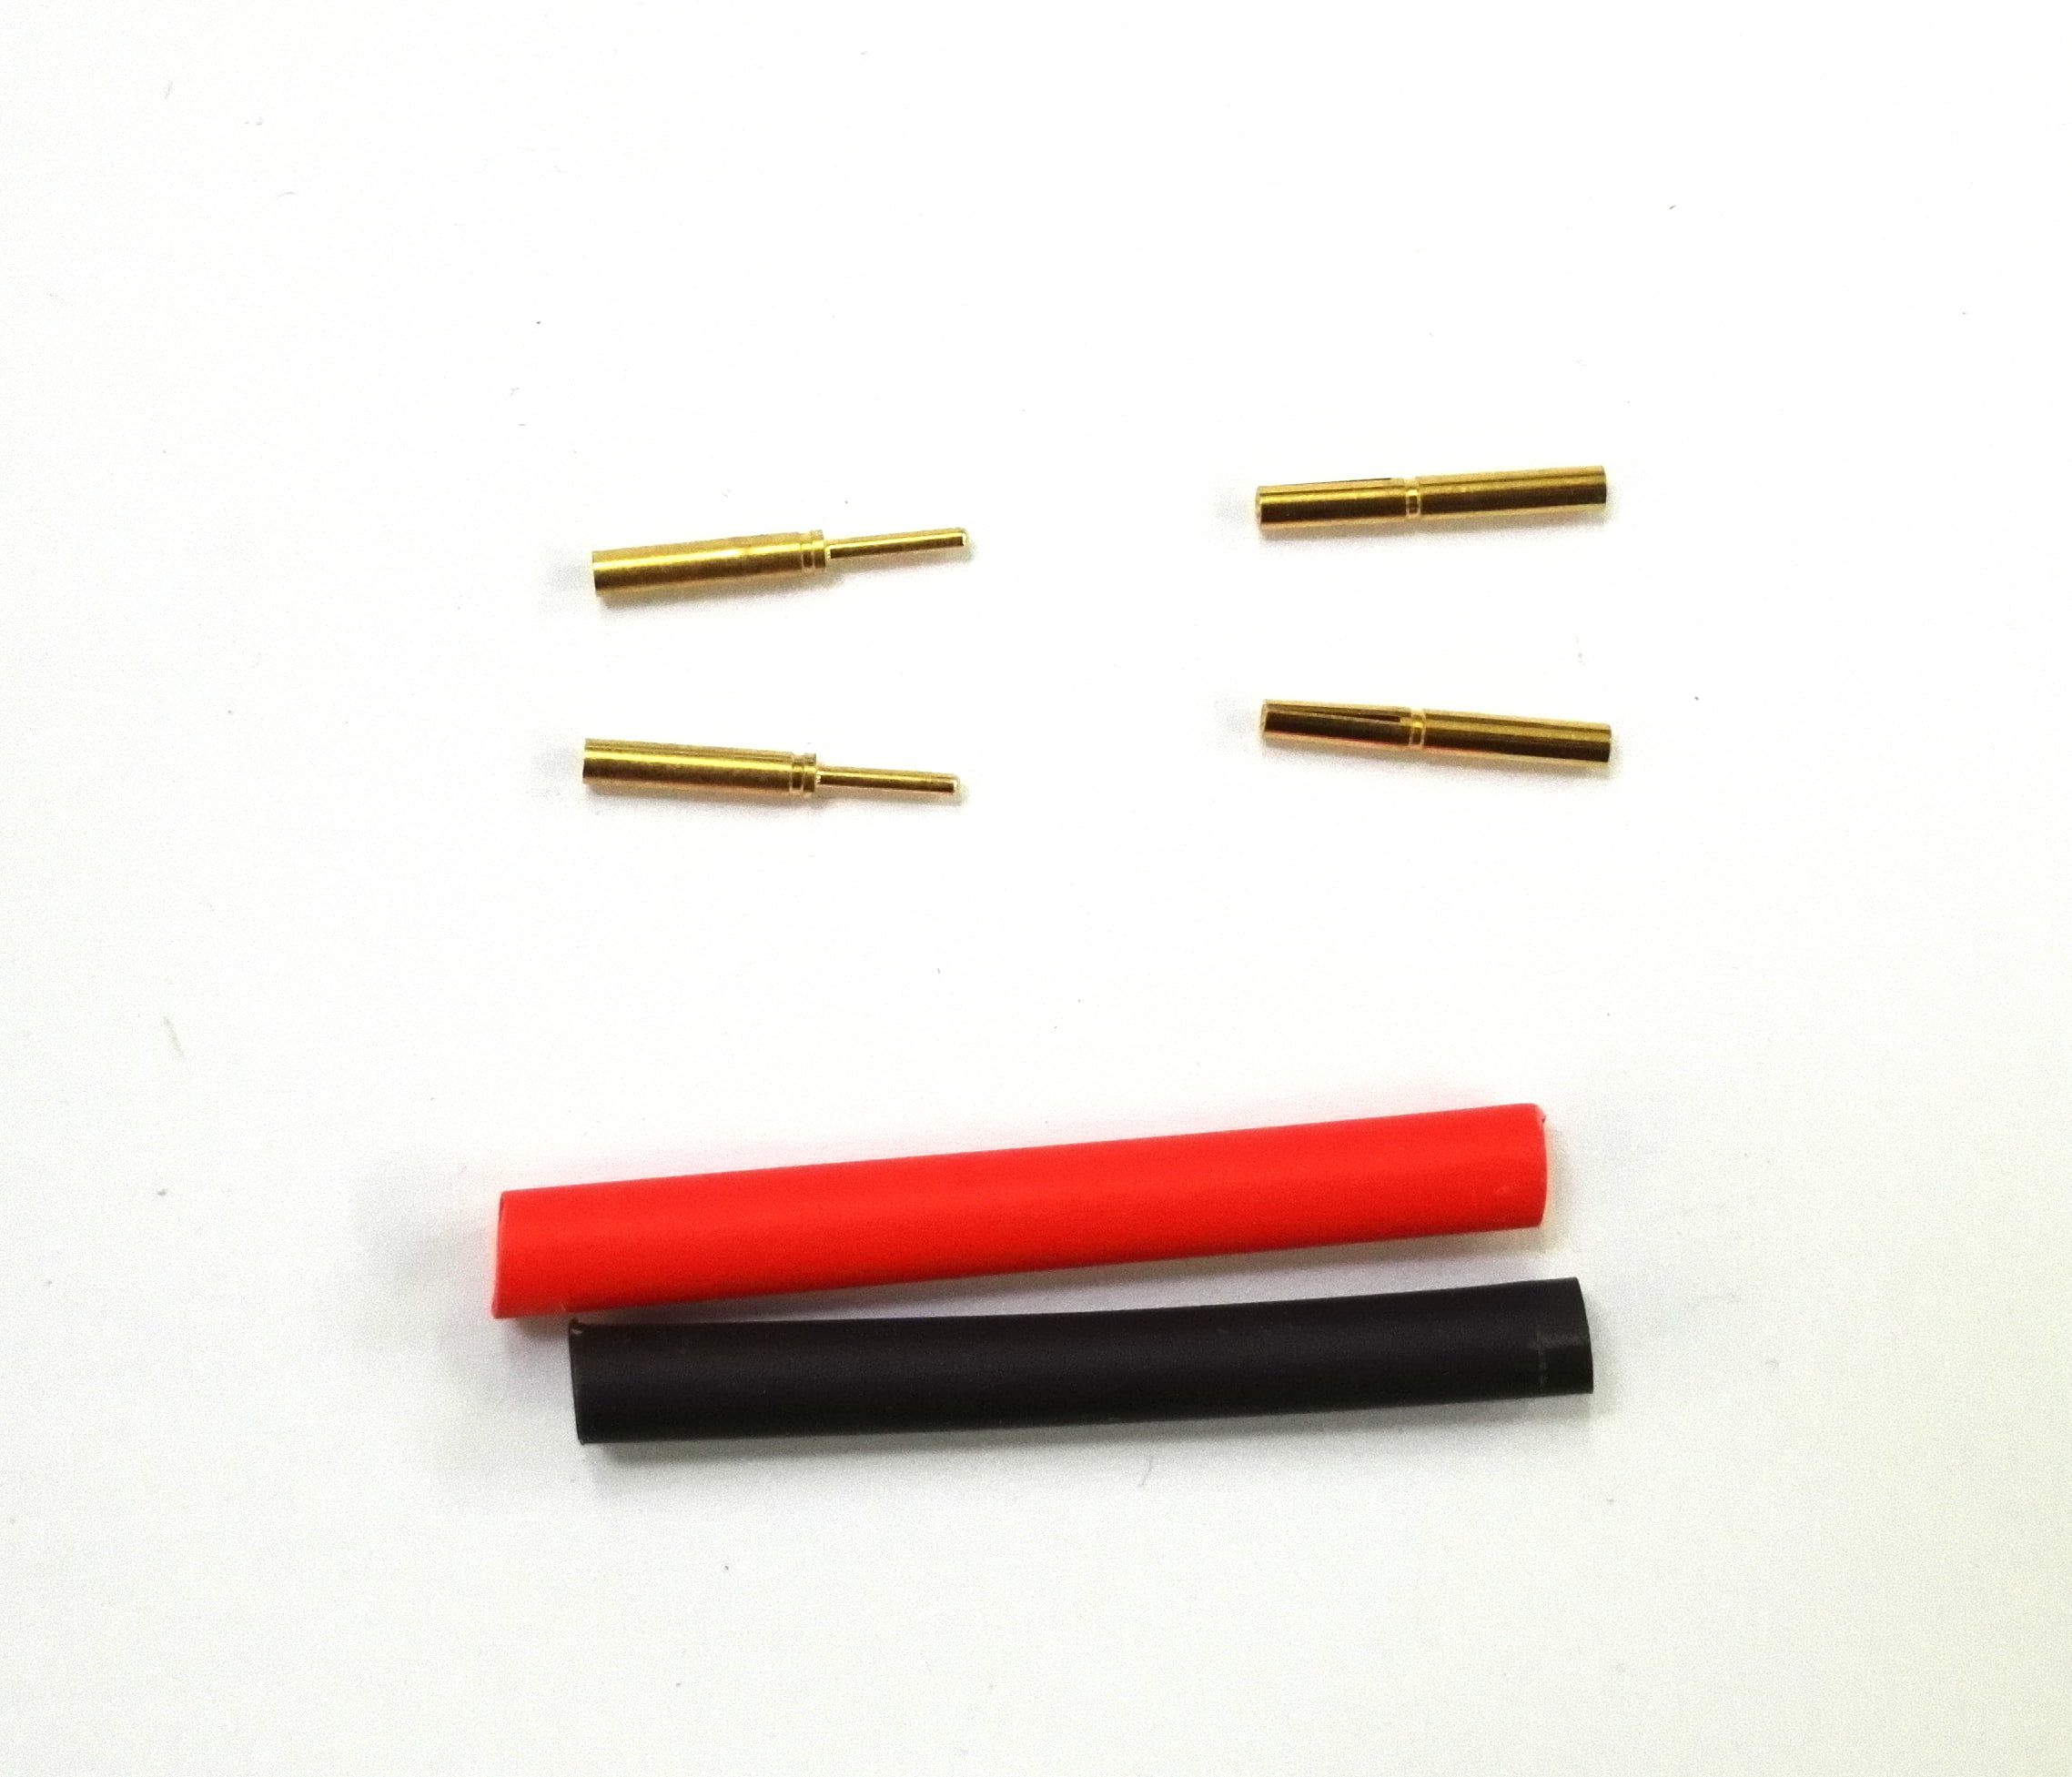 Expo 0.8mm Gold Plugs and Sockets 2 pairs